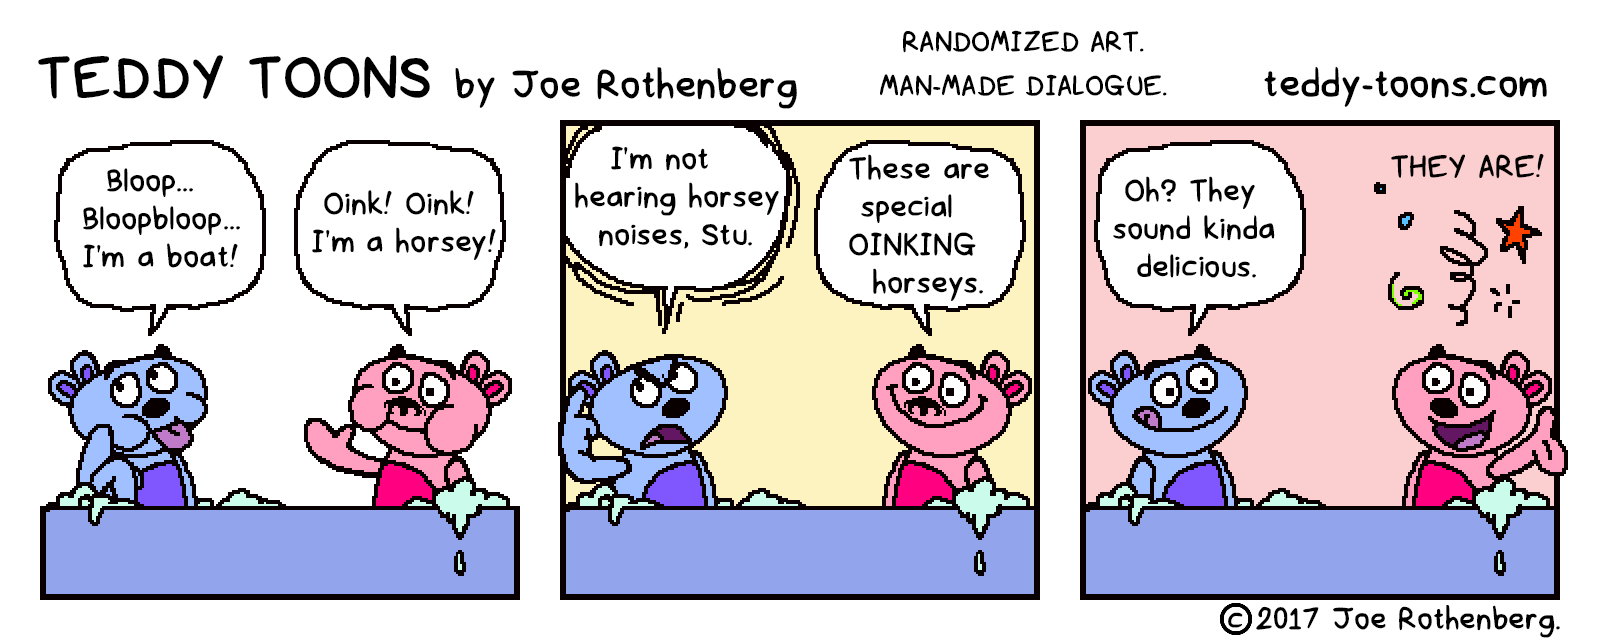 02-06-17.png